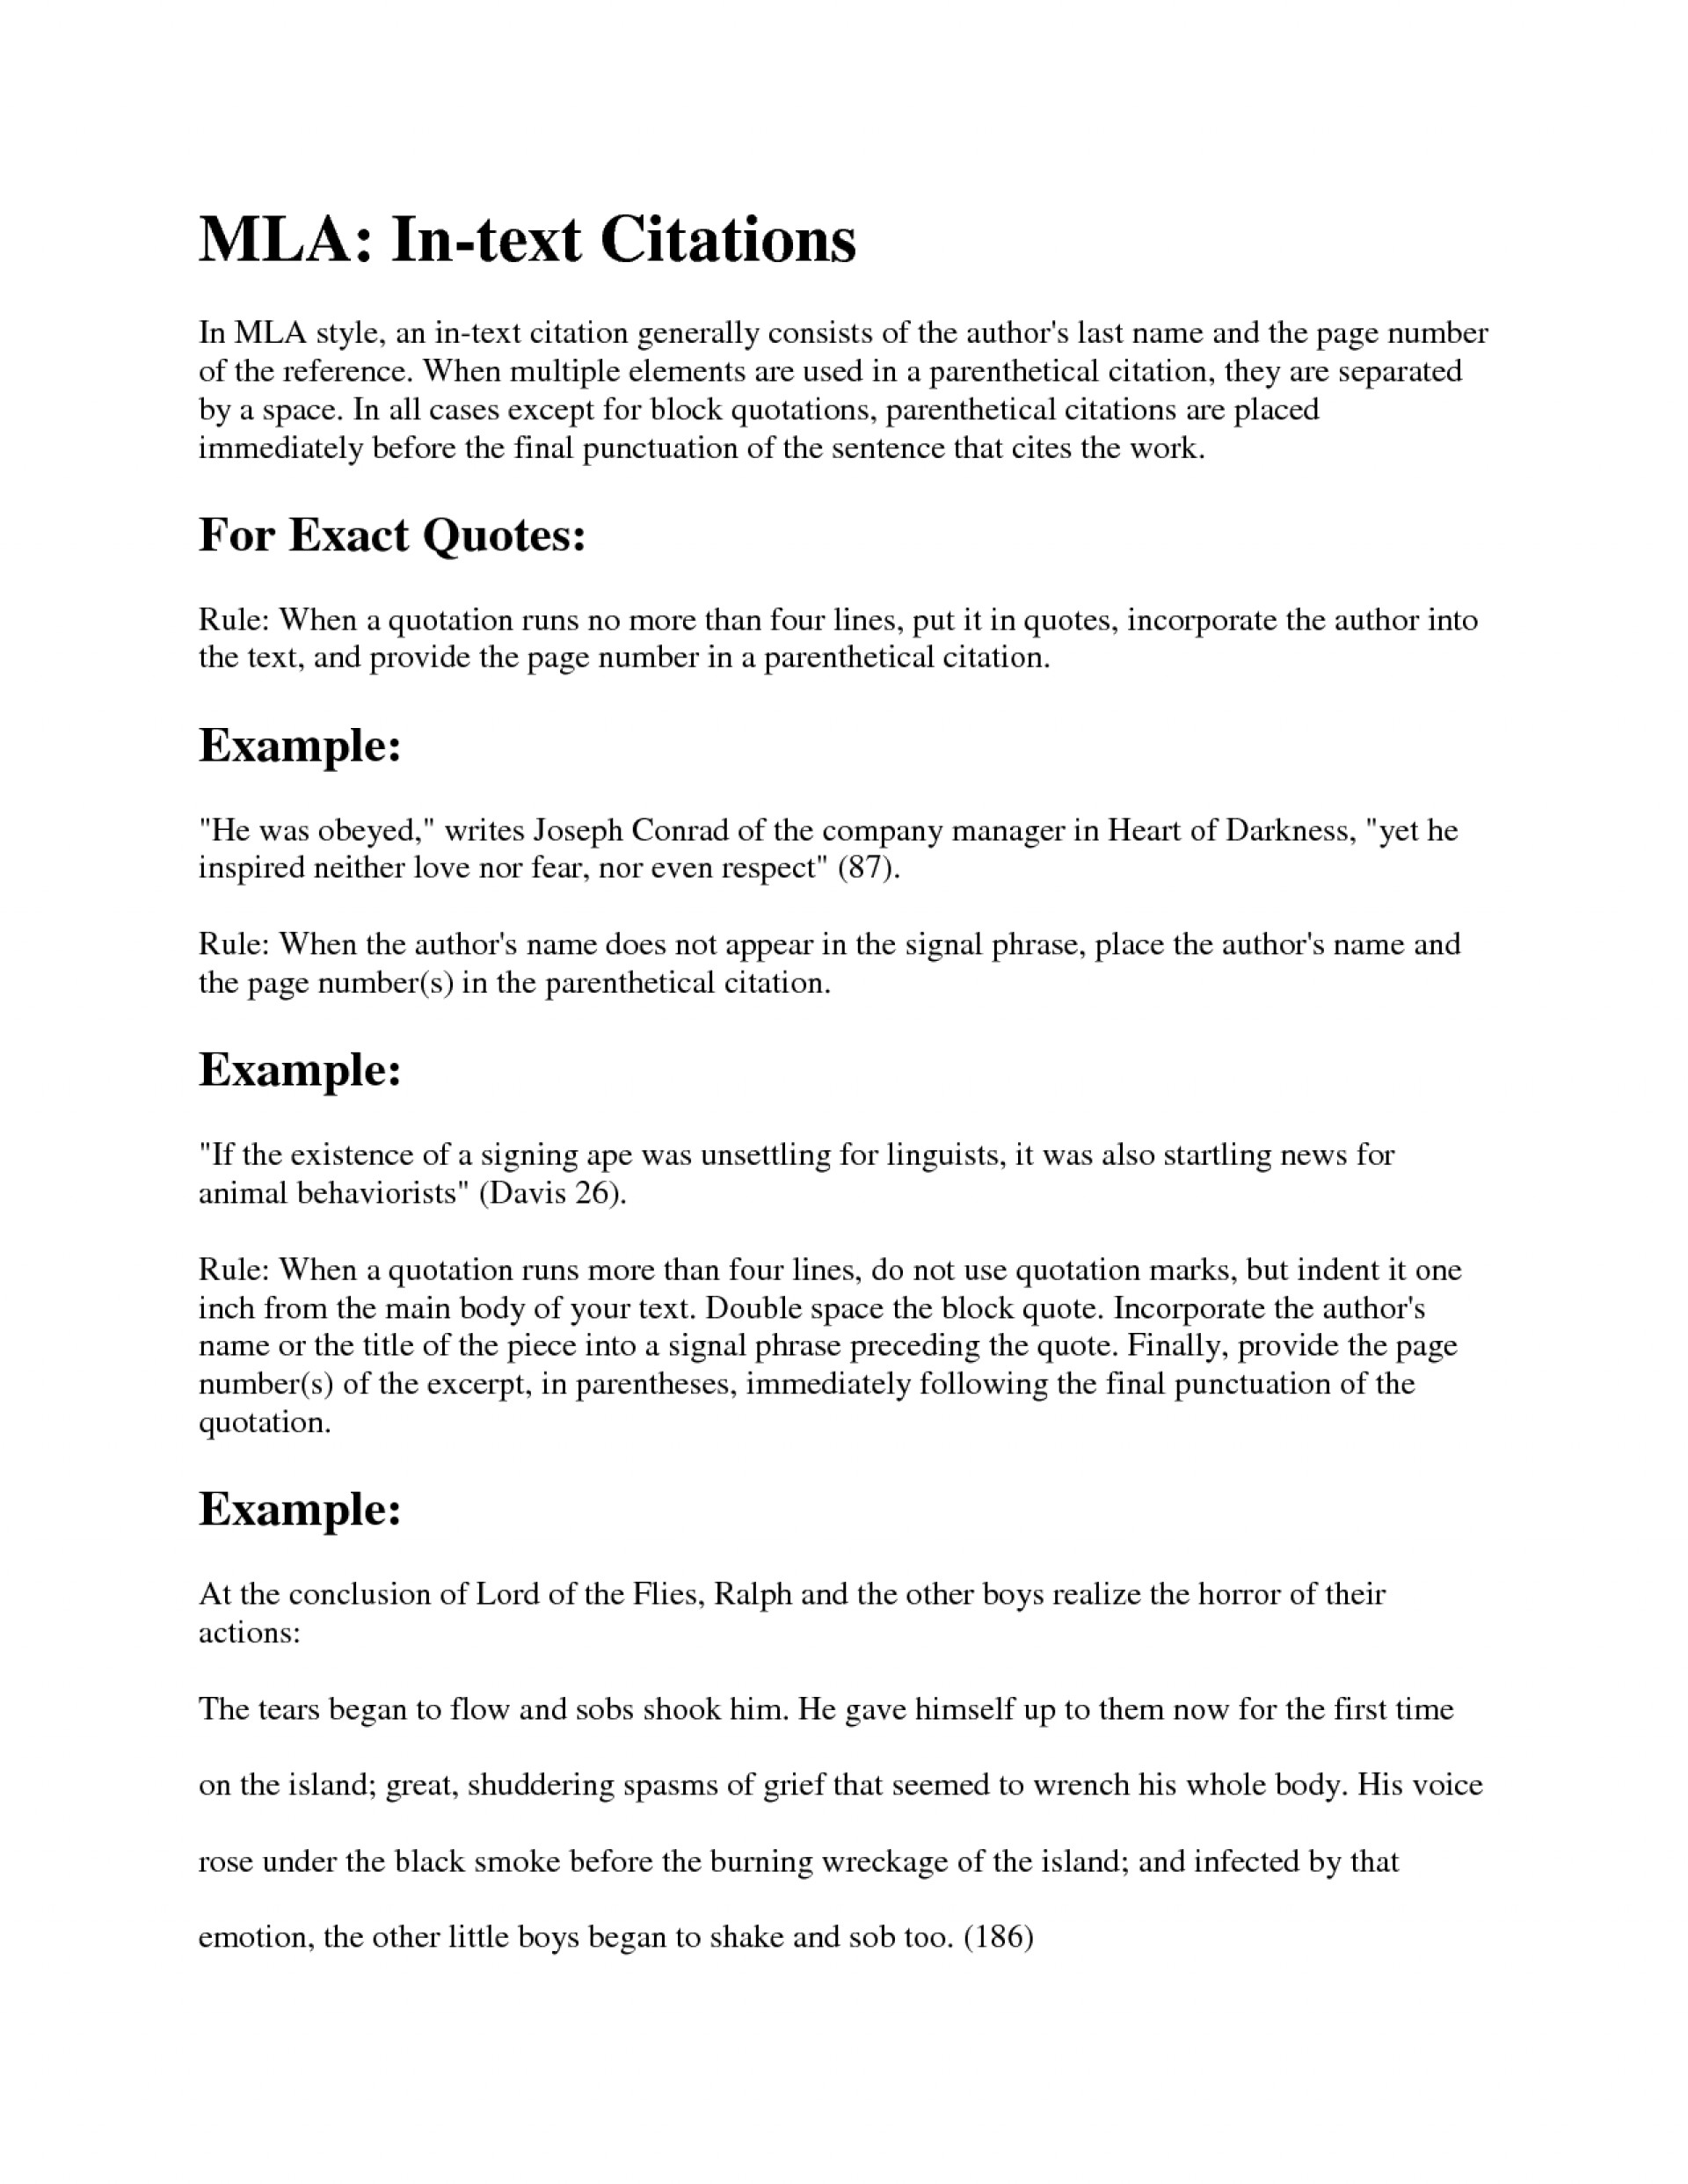 015 Mla Citation Example Research Paper Lord Of The Flies Resume Examples Images Cover Letter Striking Format Encyclopedia Article Book Purdue Owl 1920